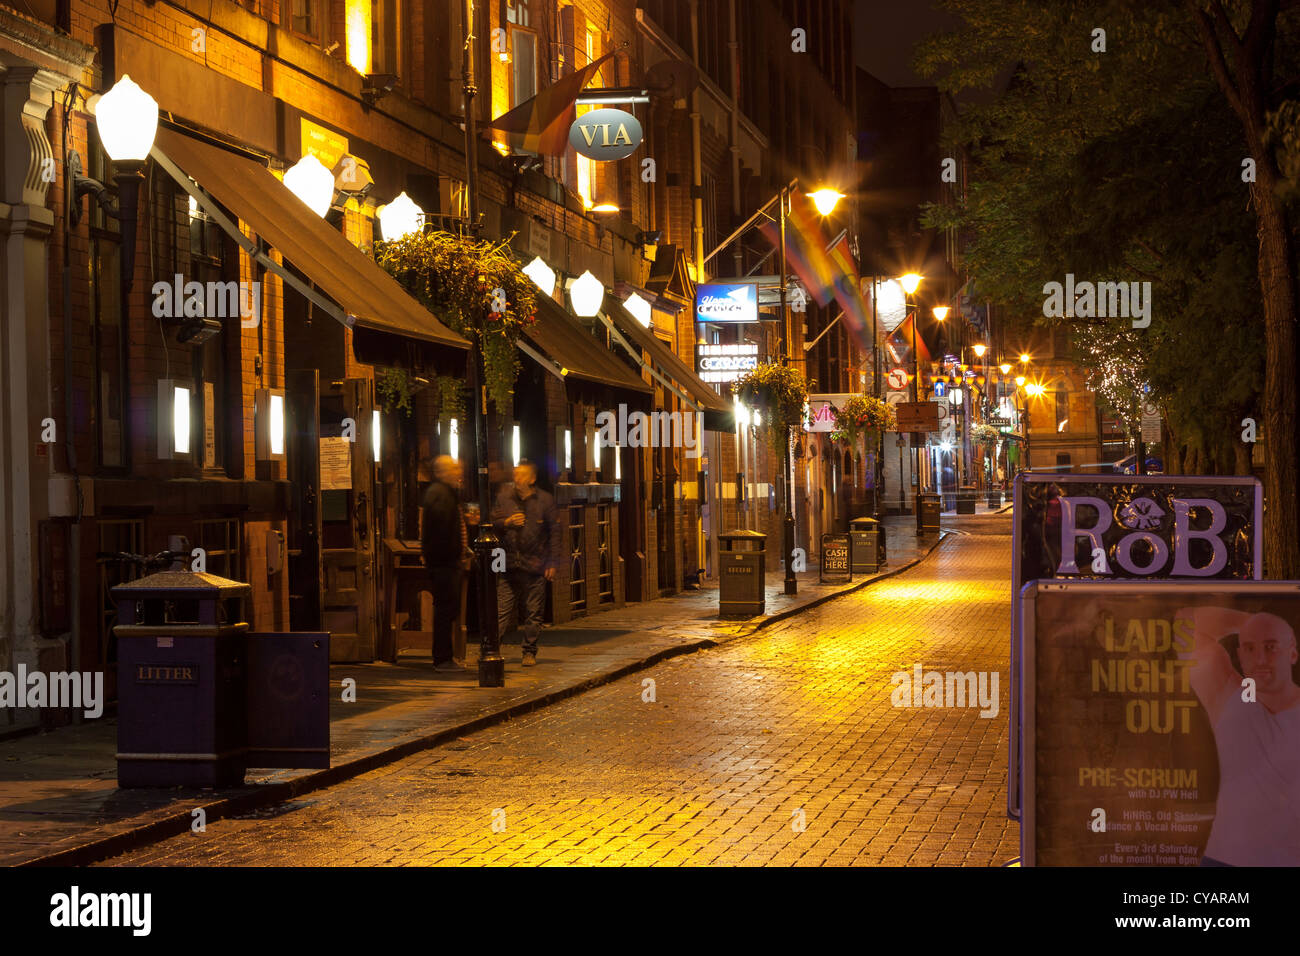 Canal Street, Manchester - Stock Image